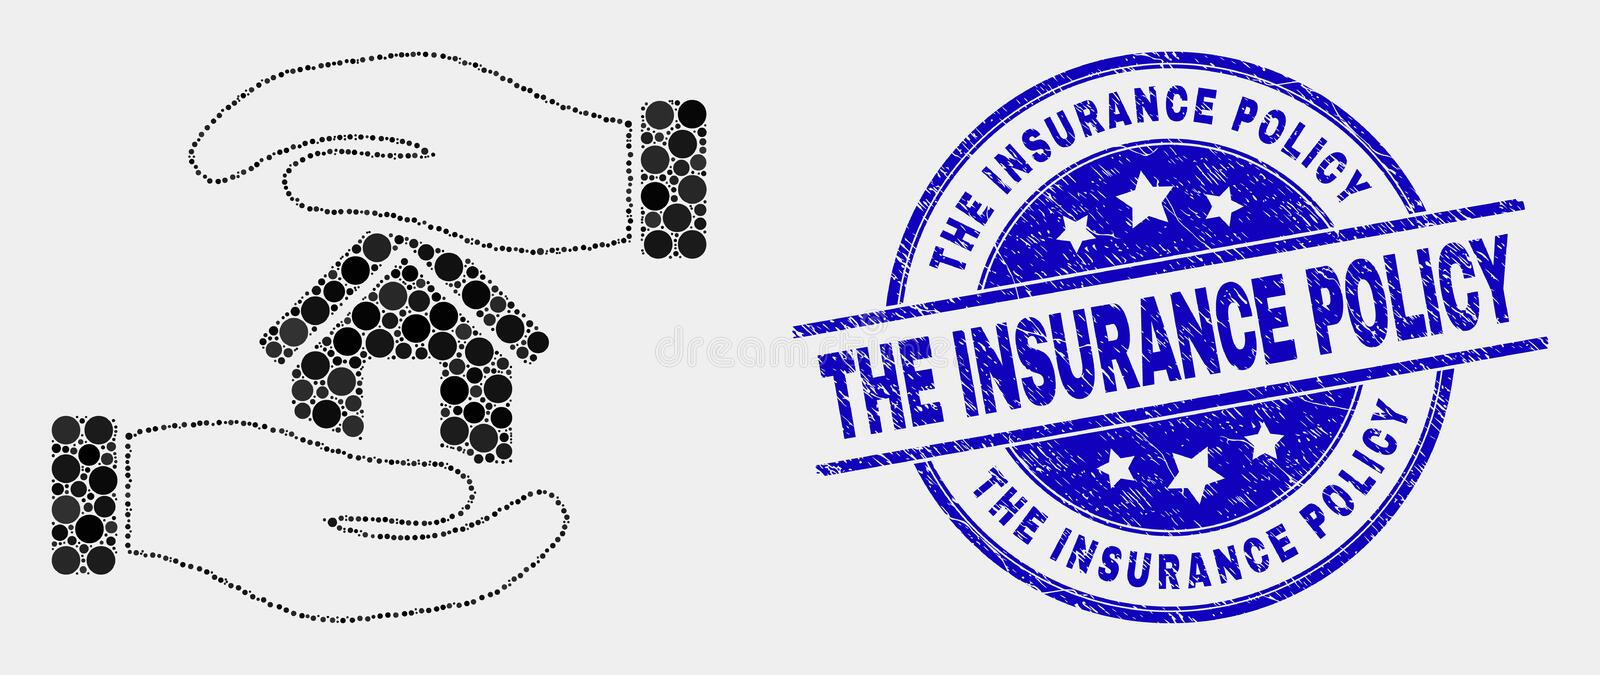 Vector Pixelated Hands Care Home Icon and Distress The Insurance Policy Watermark. Pixelated hands care home mosaic pictogram and The Insurance Policy seal stamp stock illustration